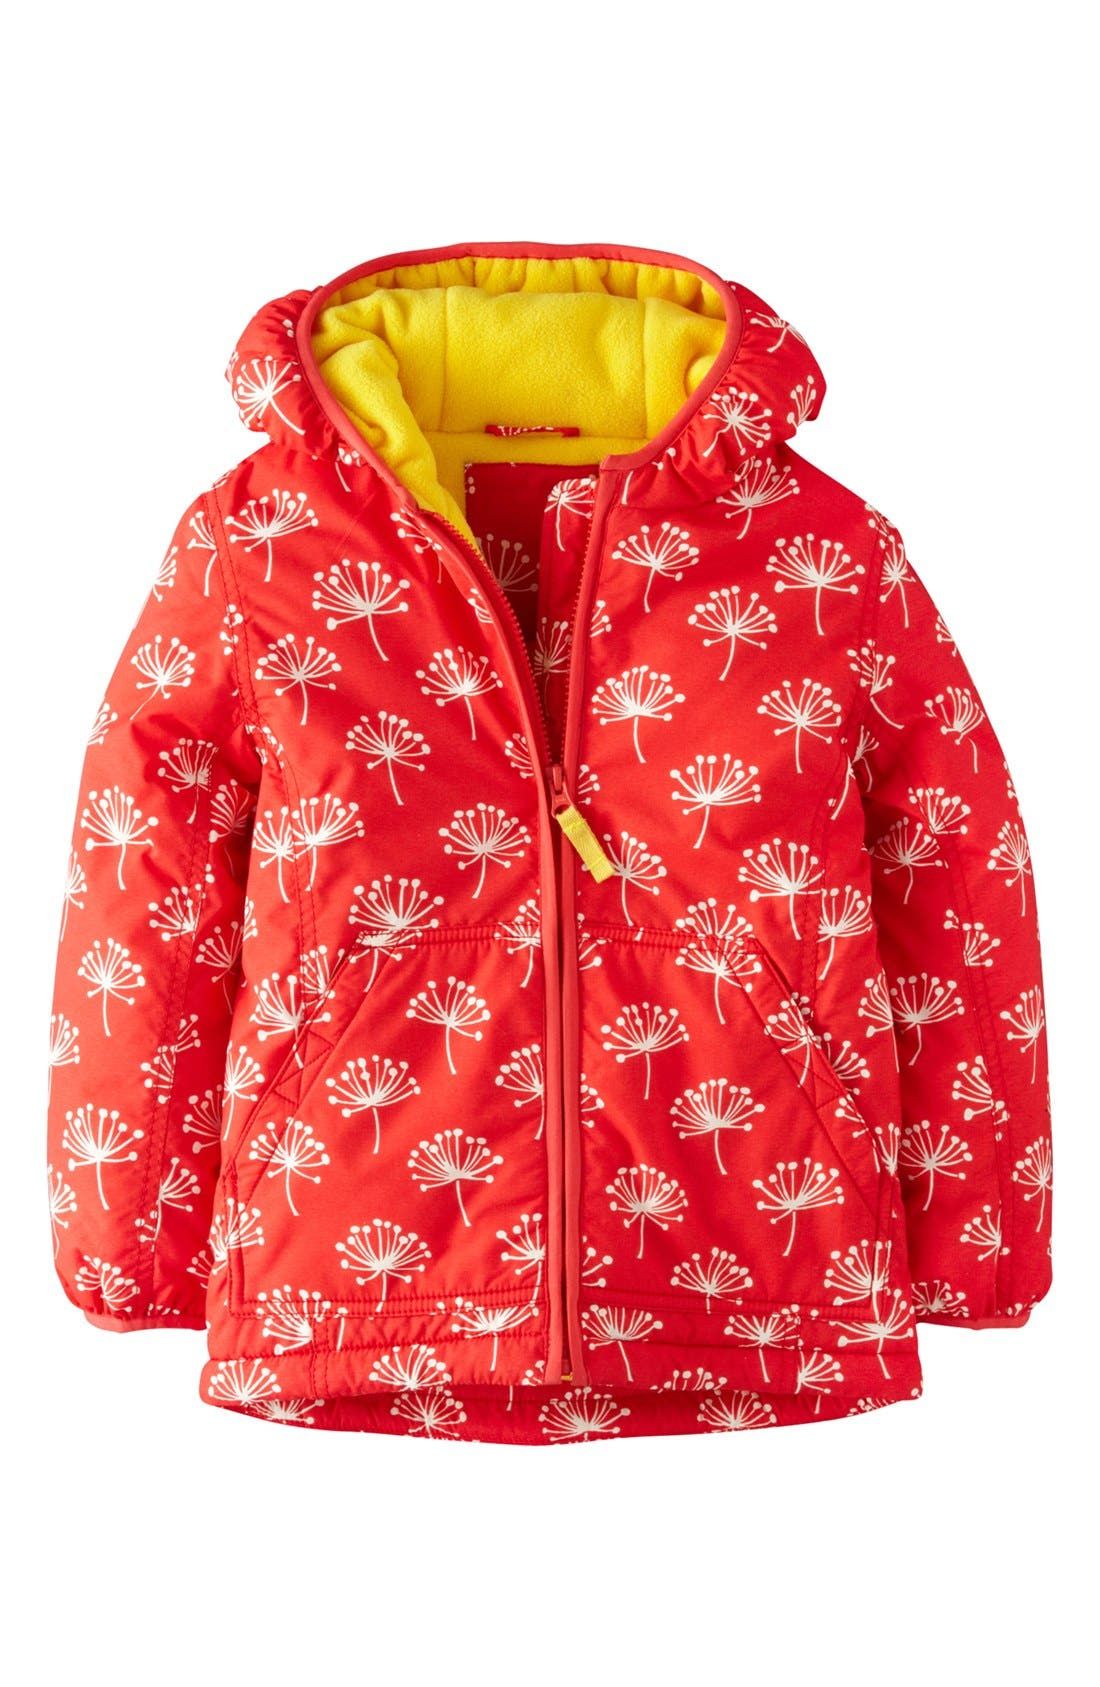 Main Image - Mini Boden Print Water Resistant Hooded Anorak (Little Girls & Big Girls)